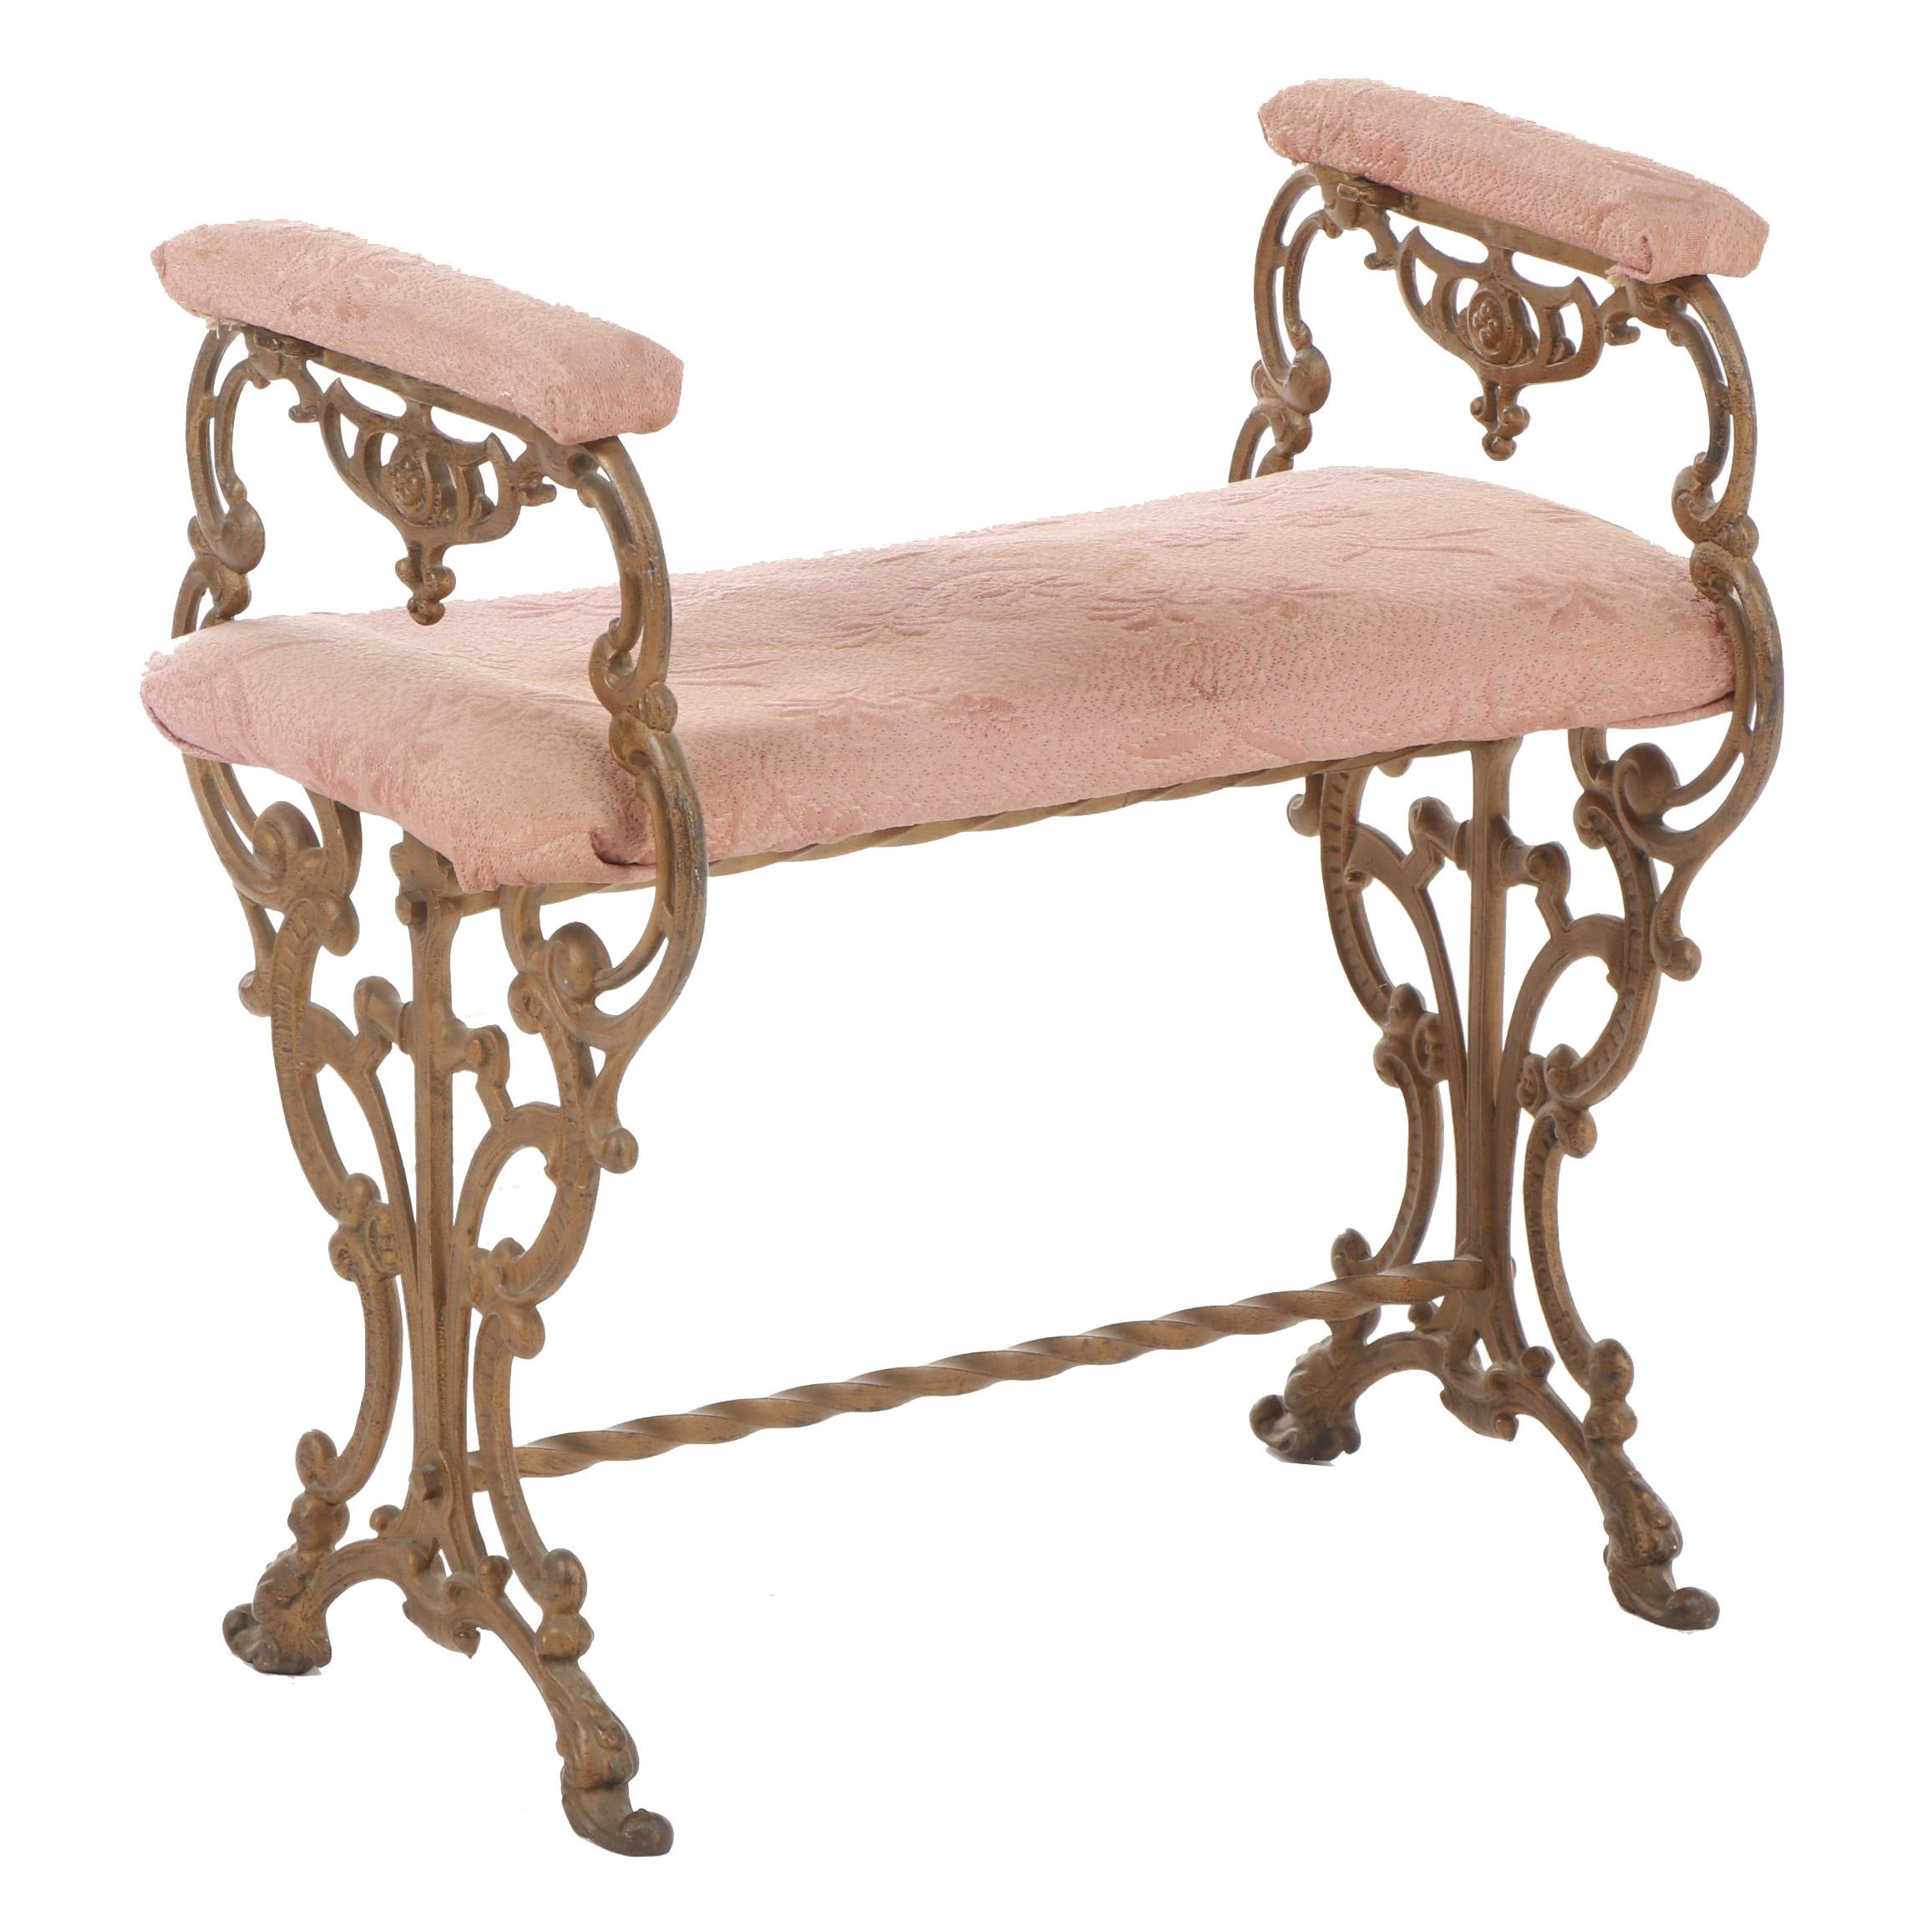 Victorian Style Pink Upholstered Cast Iron Vanity Bench, Early 20th Century